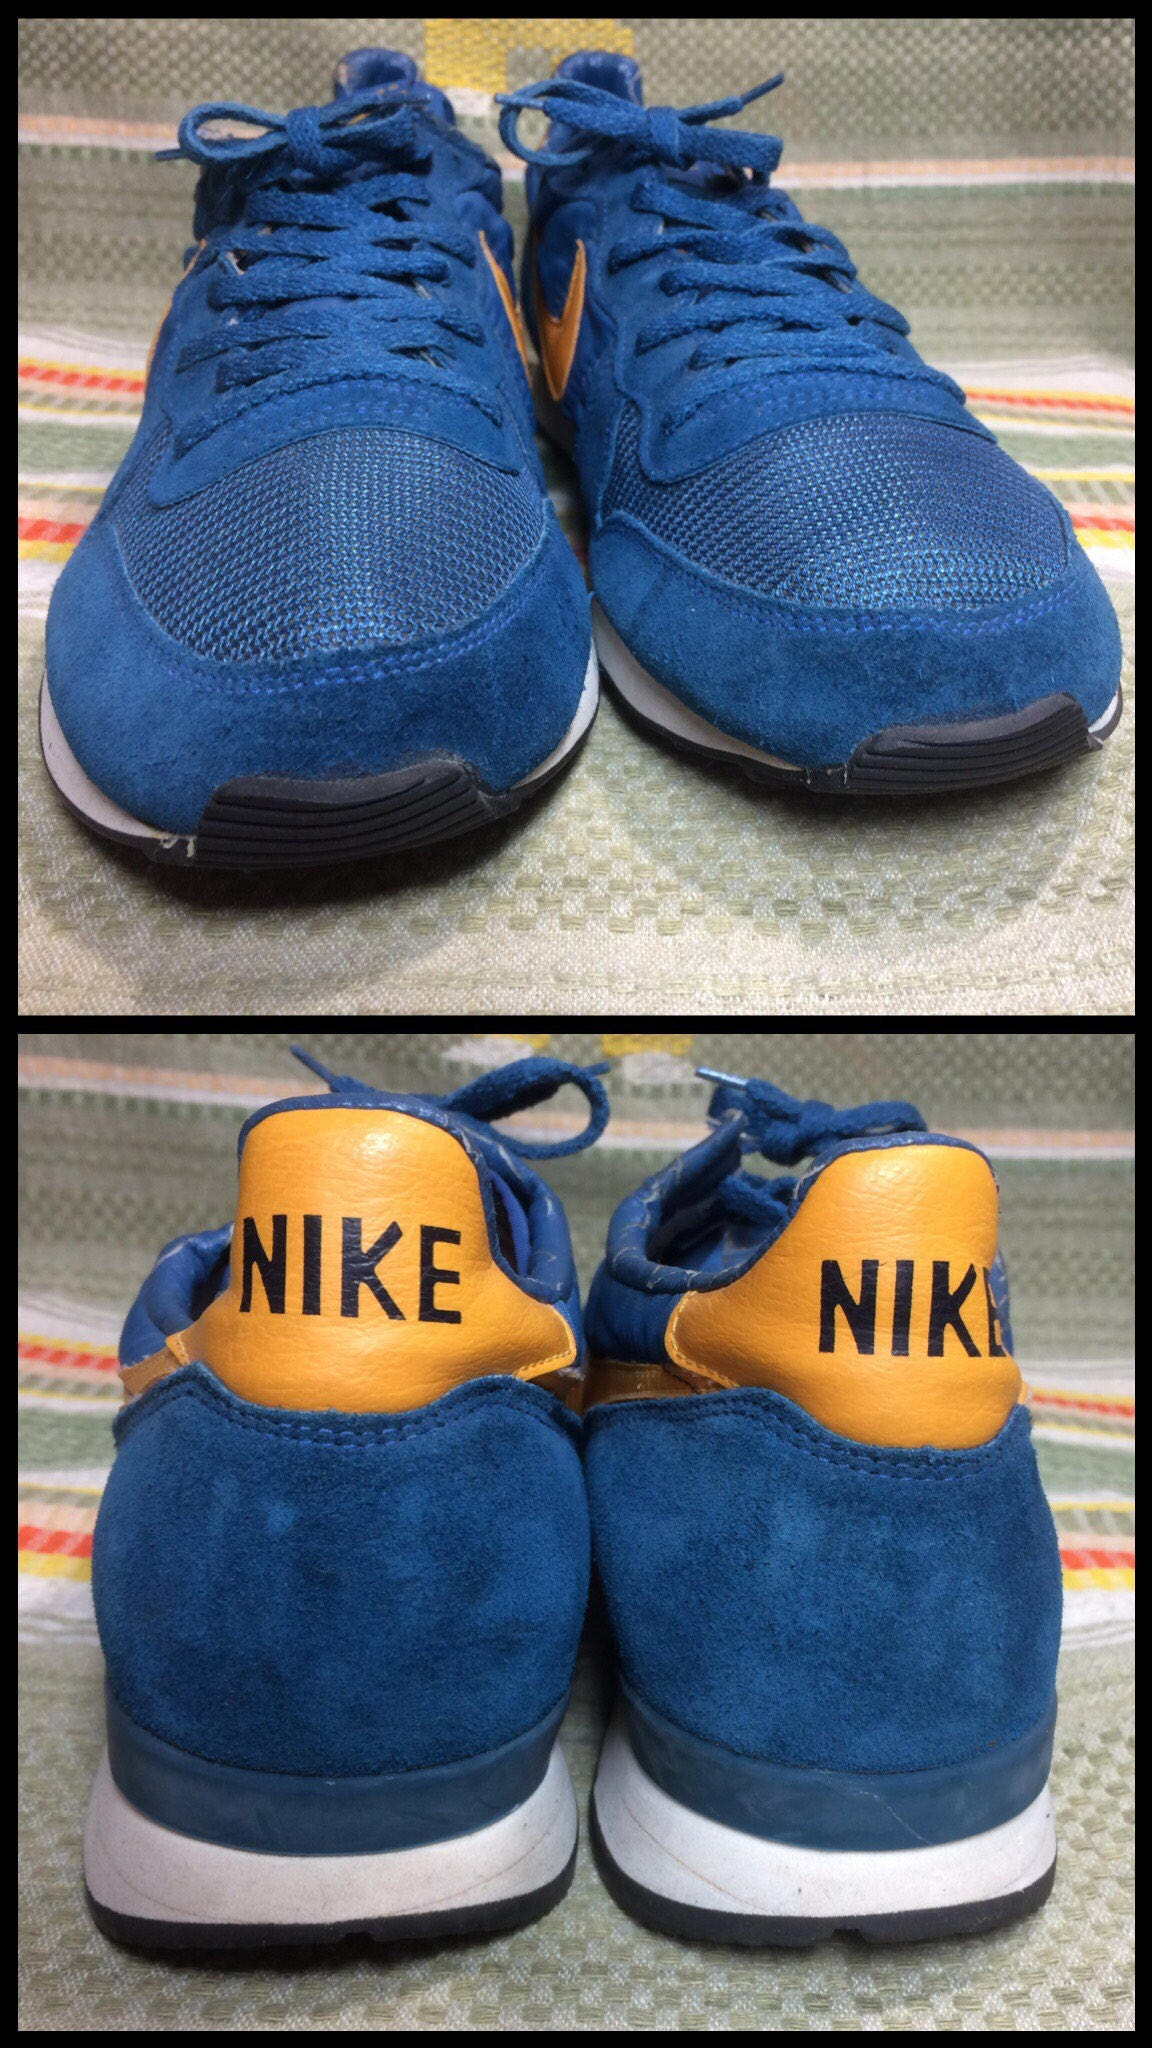 94660c9a49d 1970 s Nike Internationalist running shoes trainers Sneakers Kicks ...